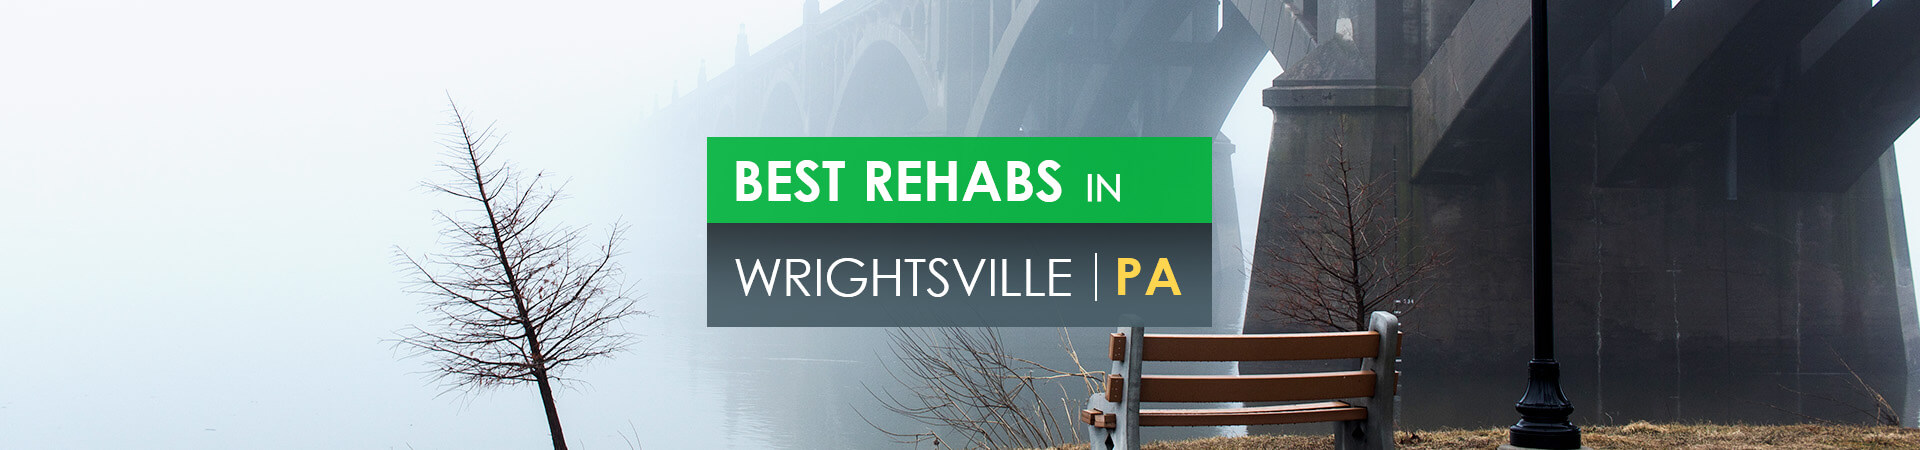 Best rehabs in Wrightsville, PA